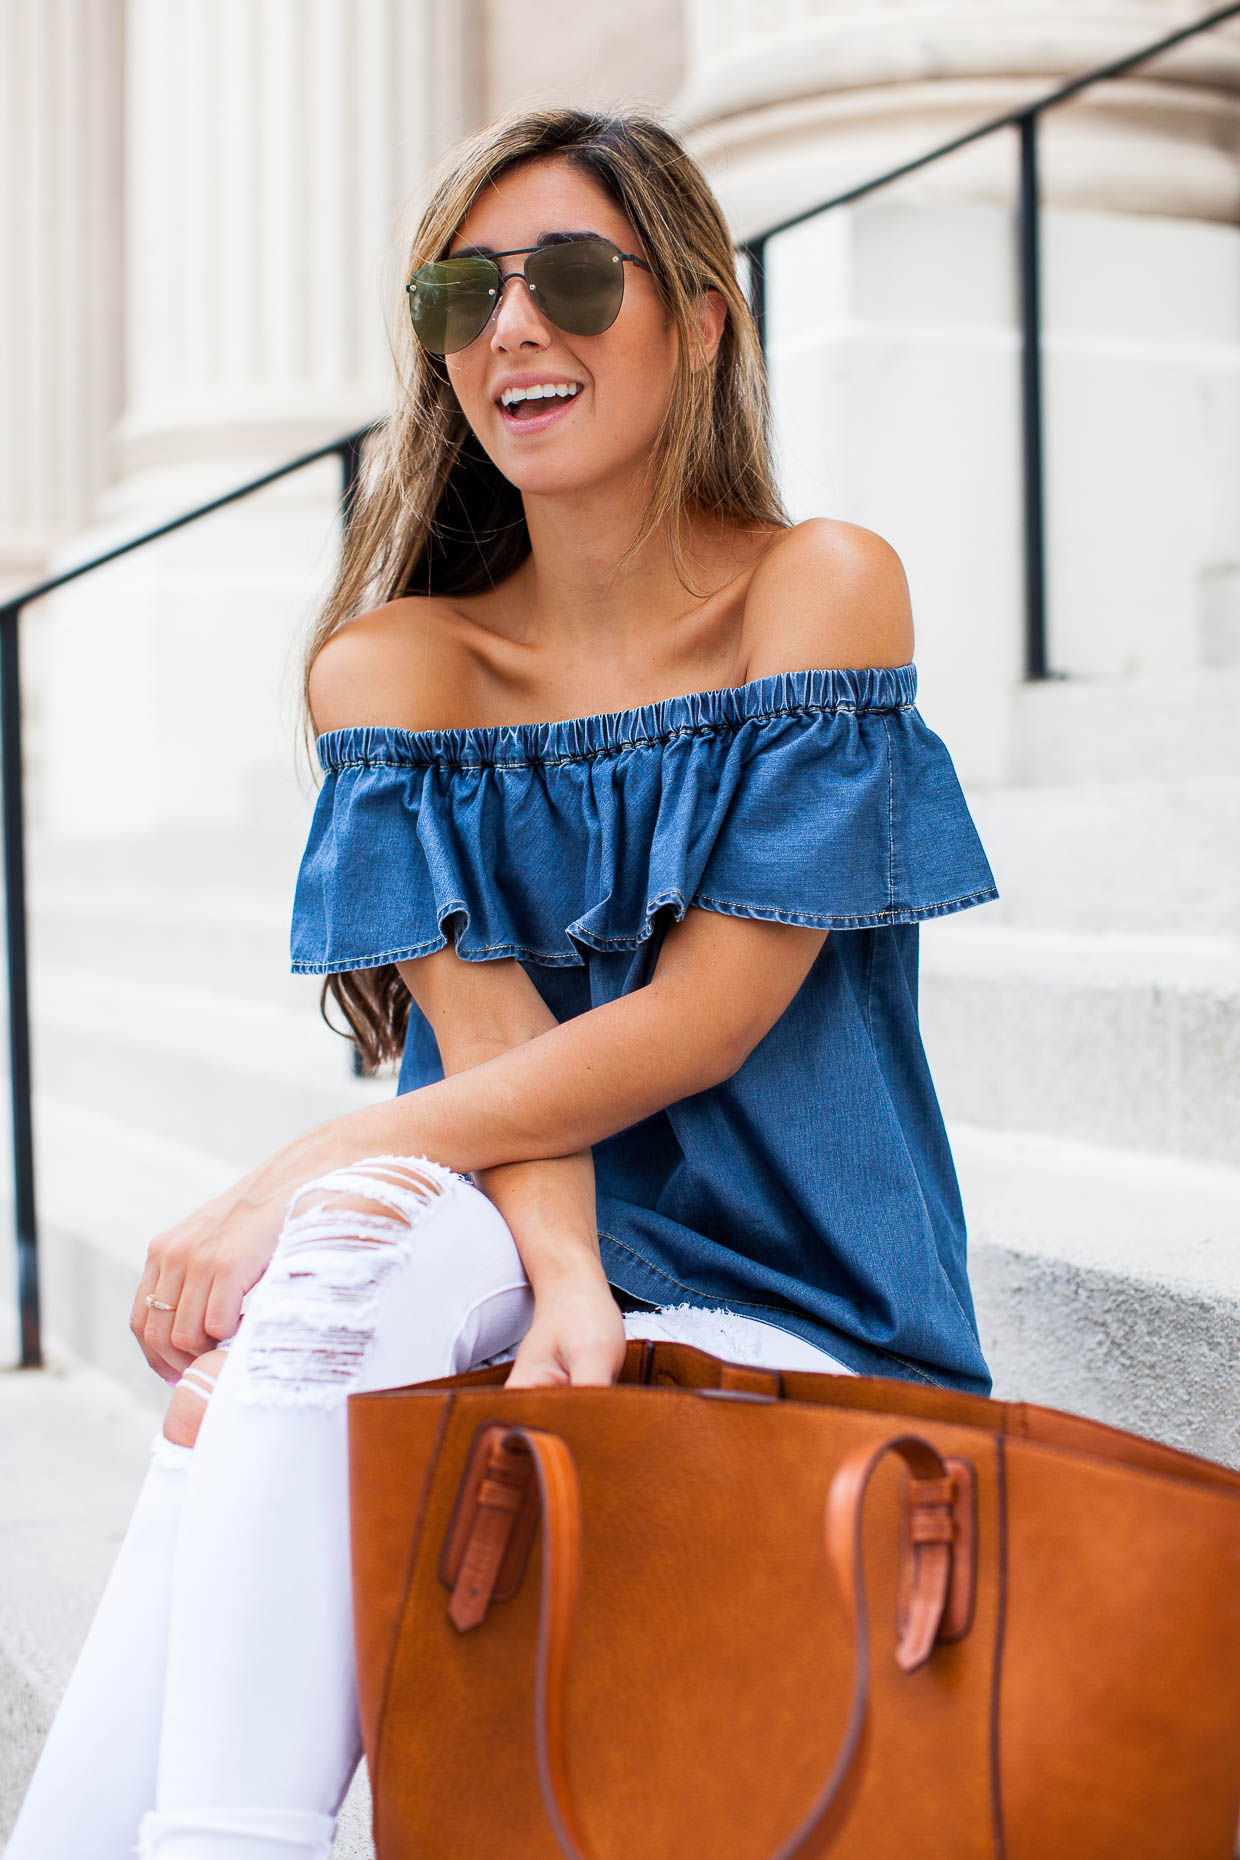 The Darling Detail is wearing a Chelsea28 Off the Shoulder Chambray Top, 'Le Color Rip' Skinny Jeans, 'The Prince' 57mm Sunglasses, and sporting a Sole Society Faux Leather Trapeze Tote.